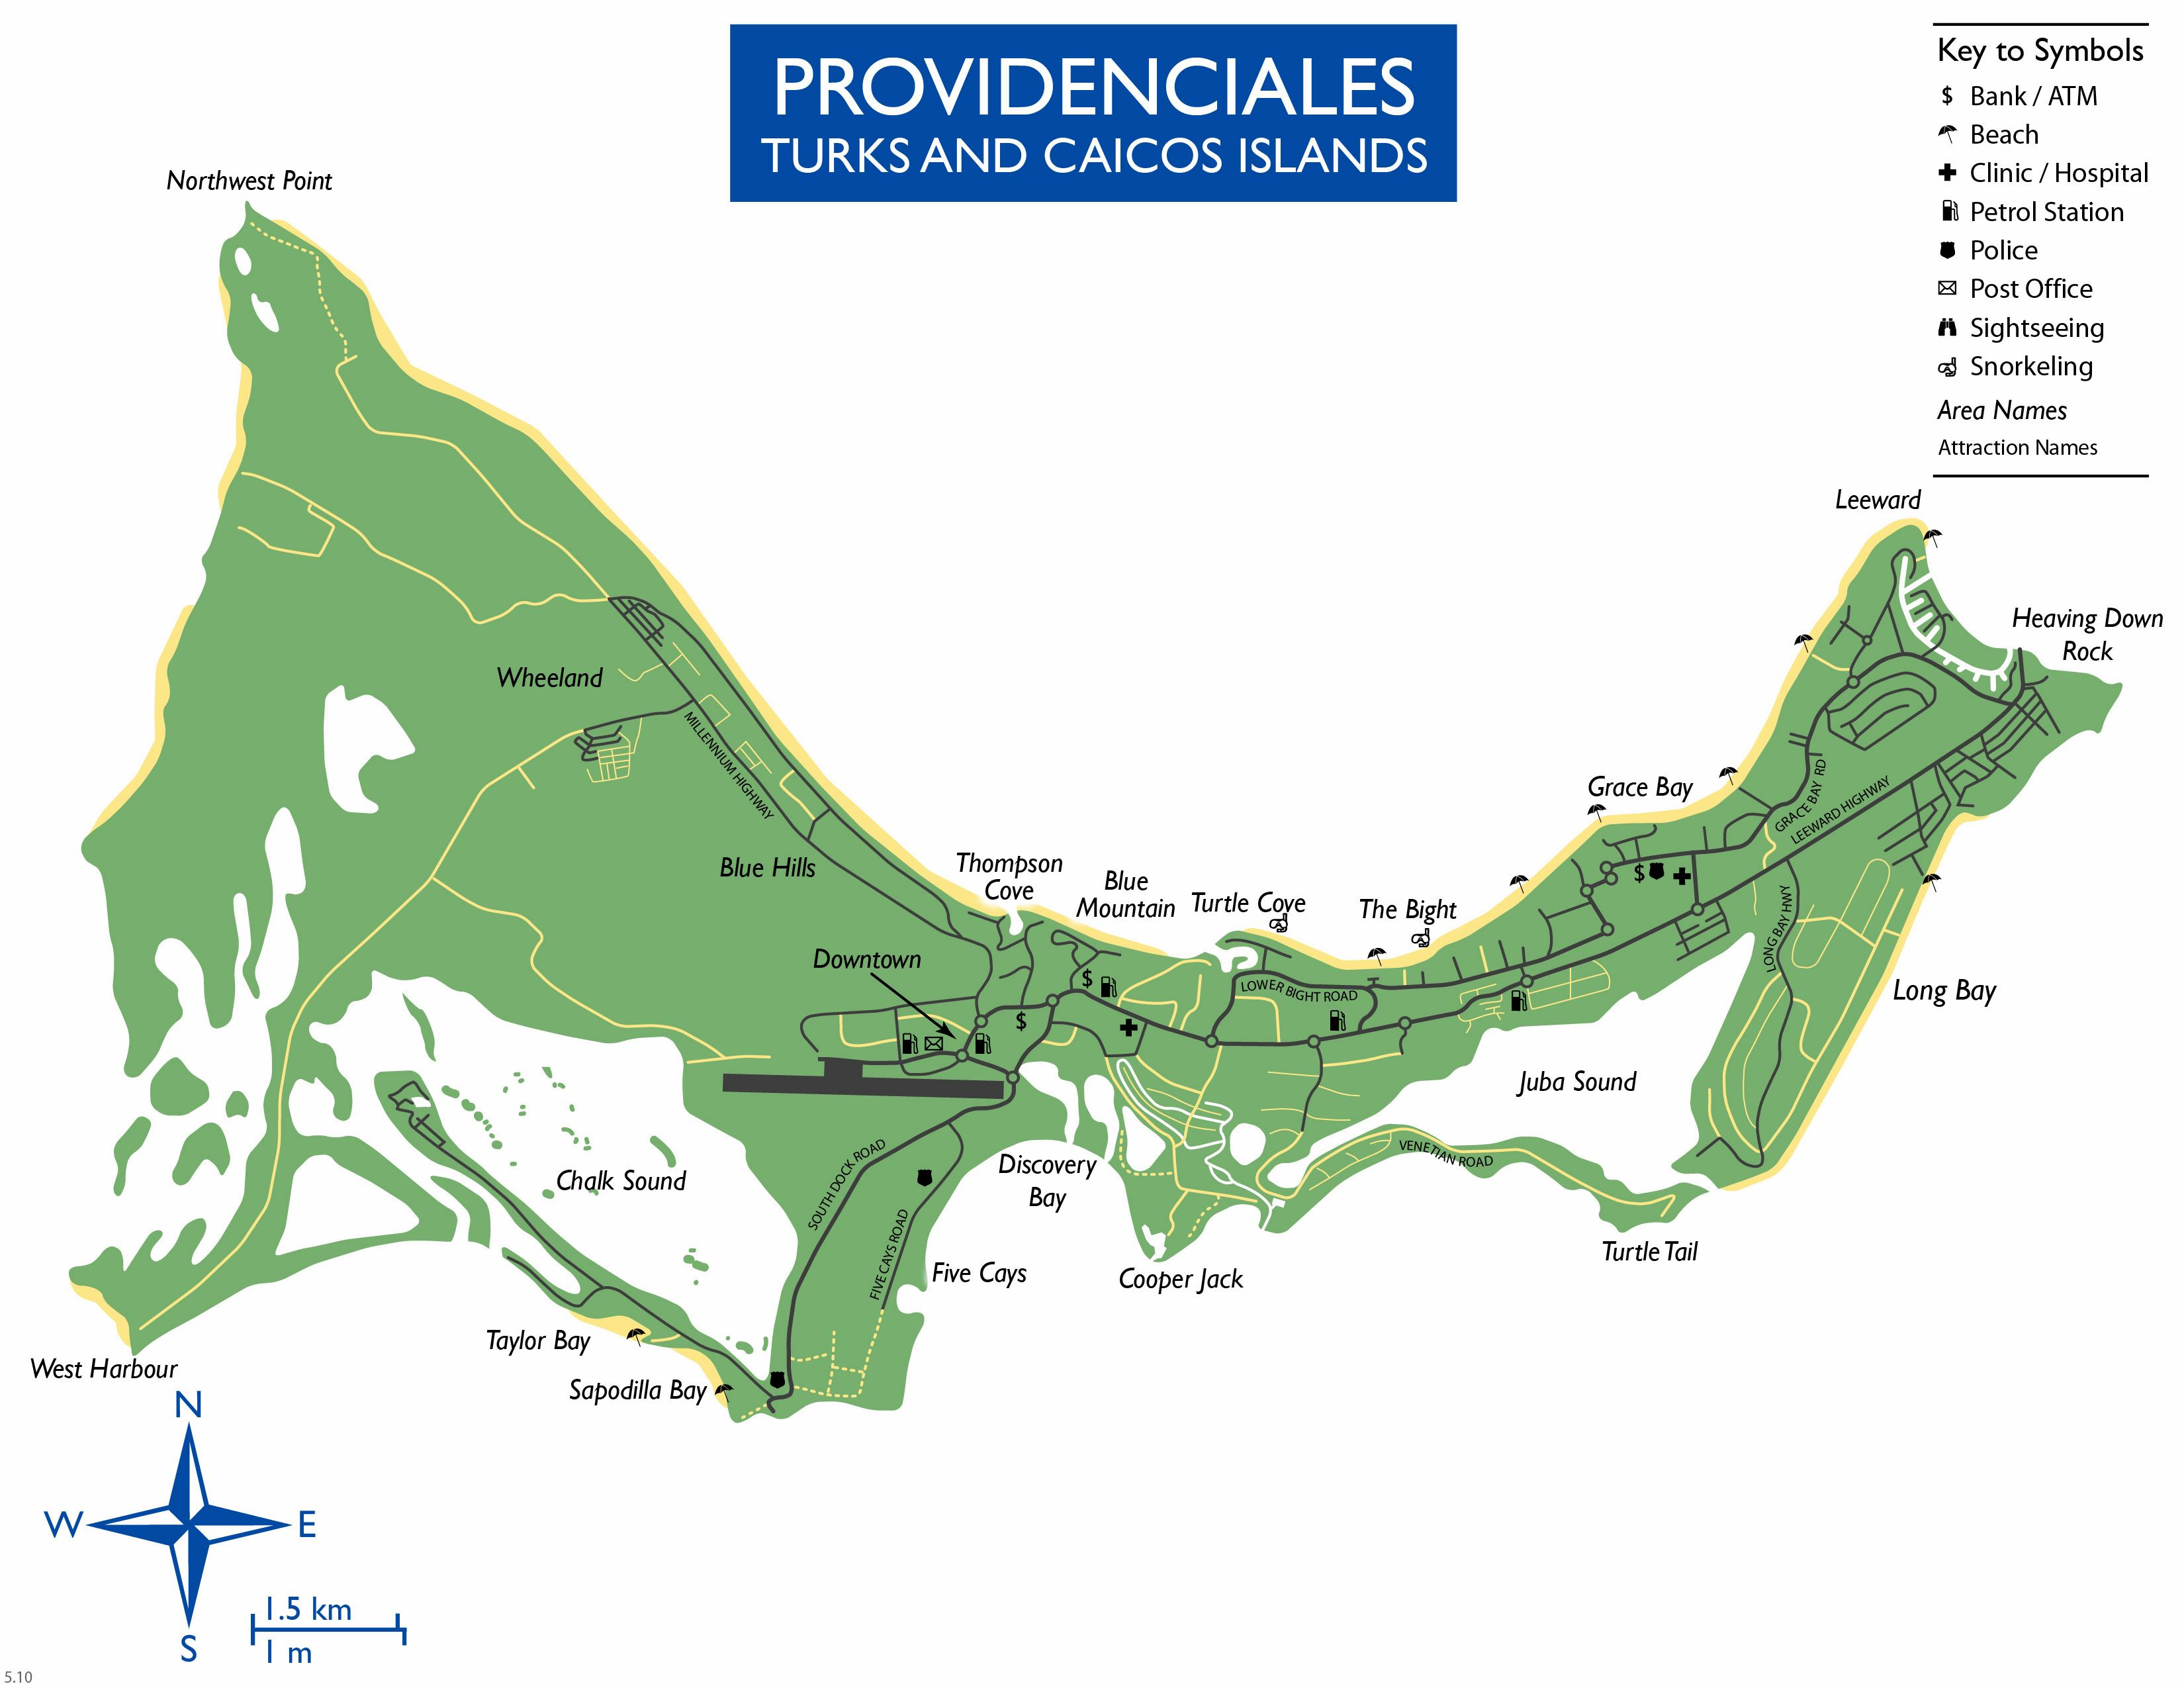 Large Providenciales Island Maps for Free Download and Print High